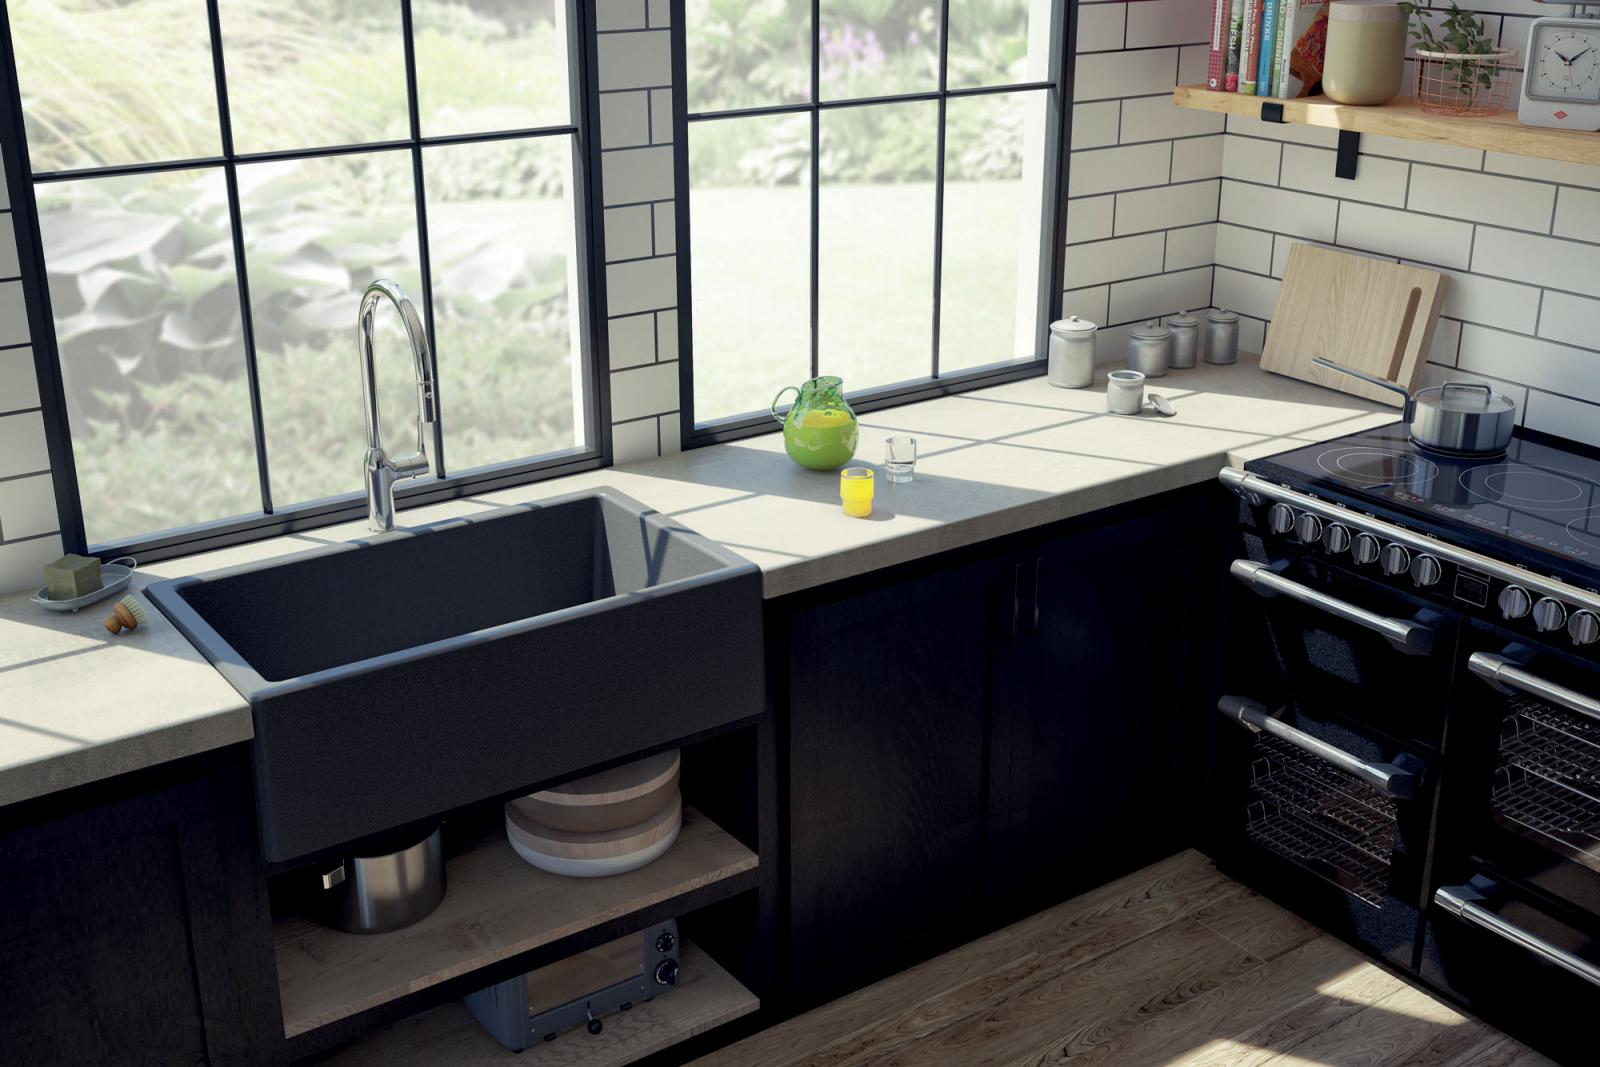 High-quality sink Philippe granit titanium gray ambiente 2 - one bowl